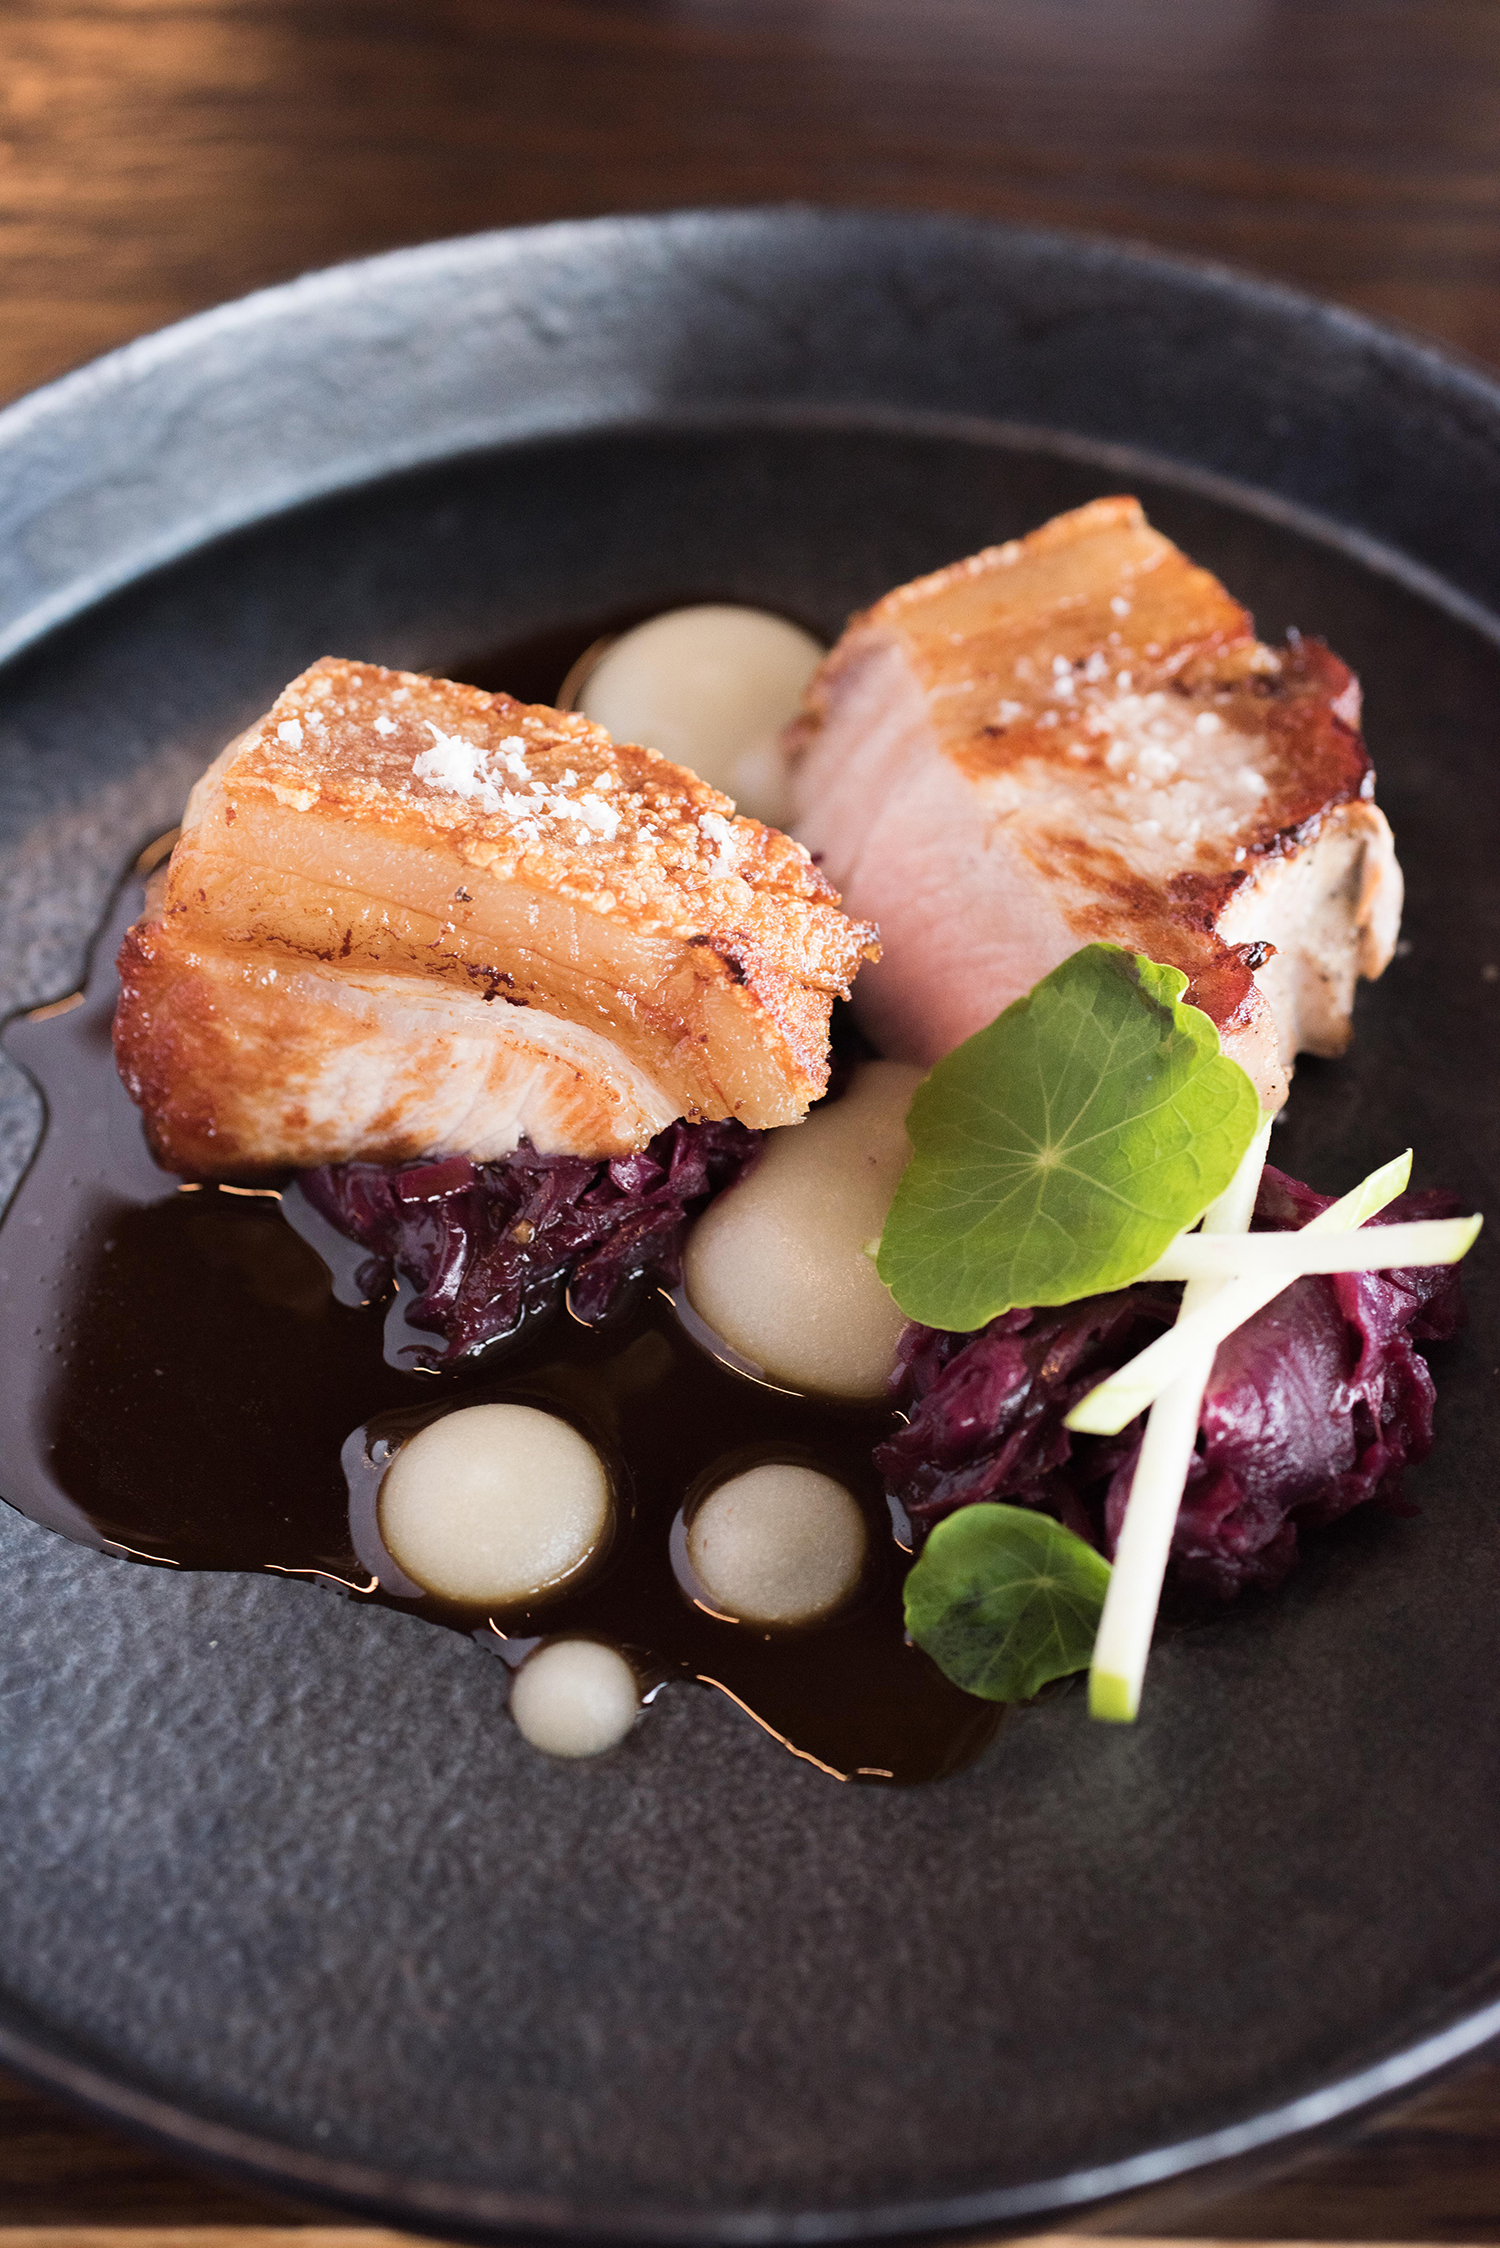 eat-bistro-terroir-pork-Lost-Magazine-June-2019.jpg